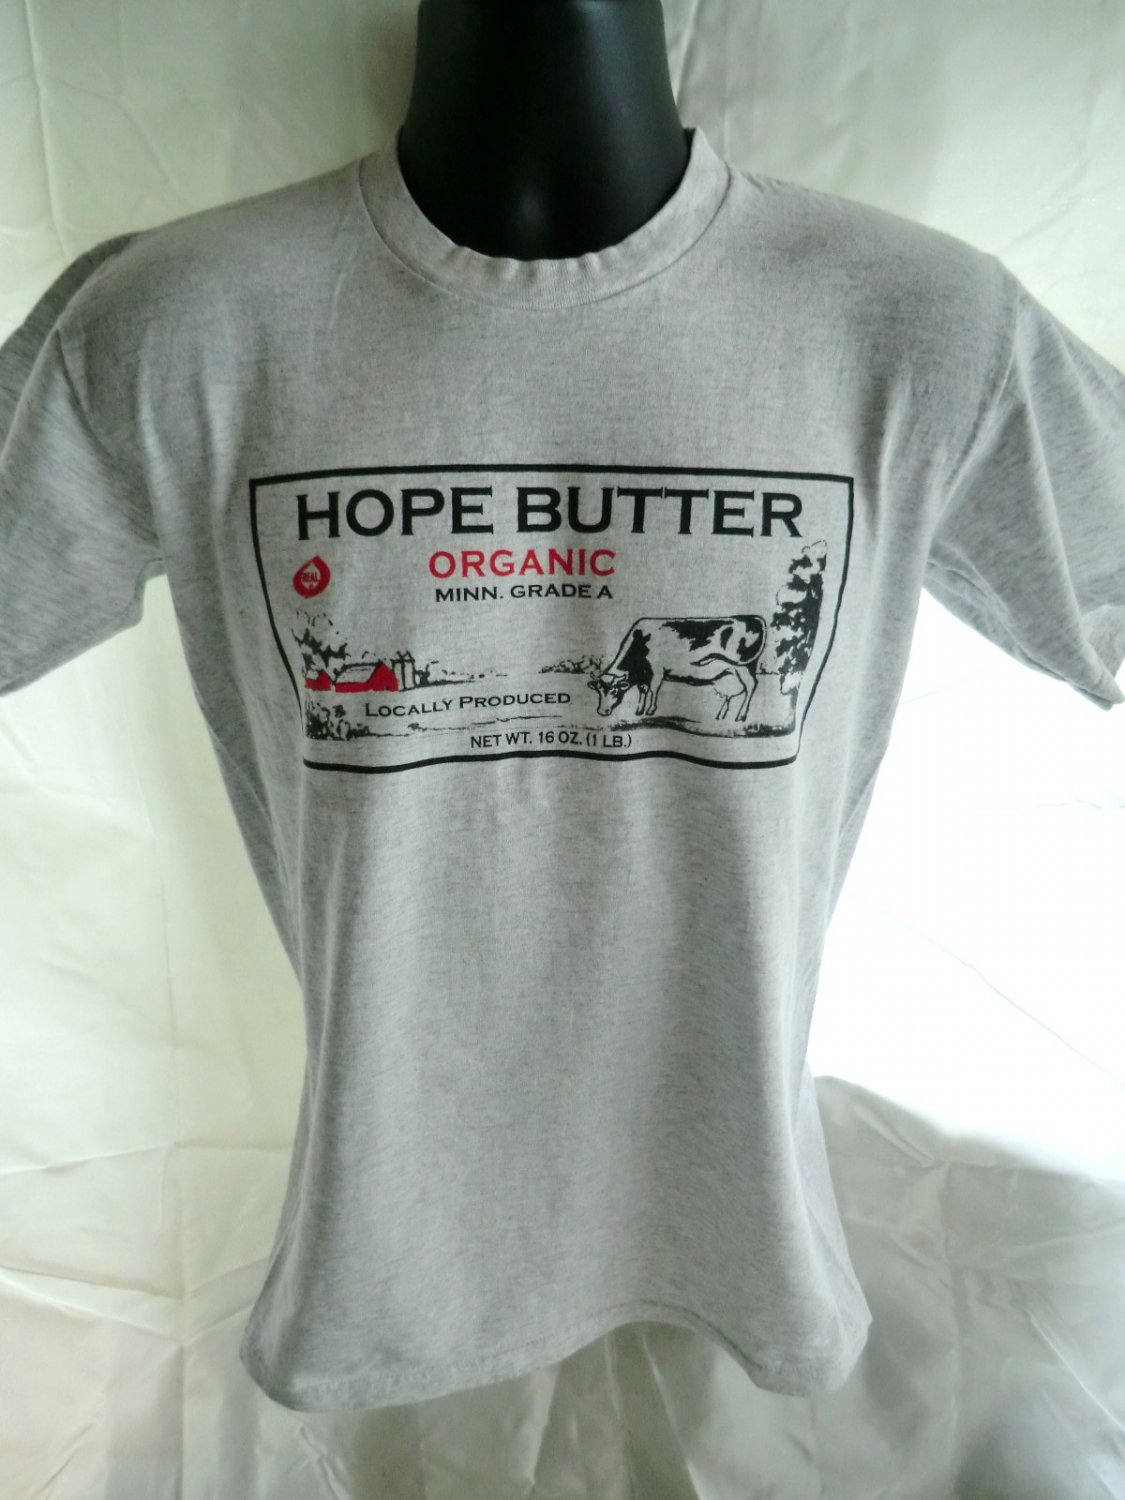 SOLD! Hope Butter Size Small T-Shirt Organic ~ Minnesota MN The BEST Butter!